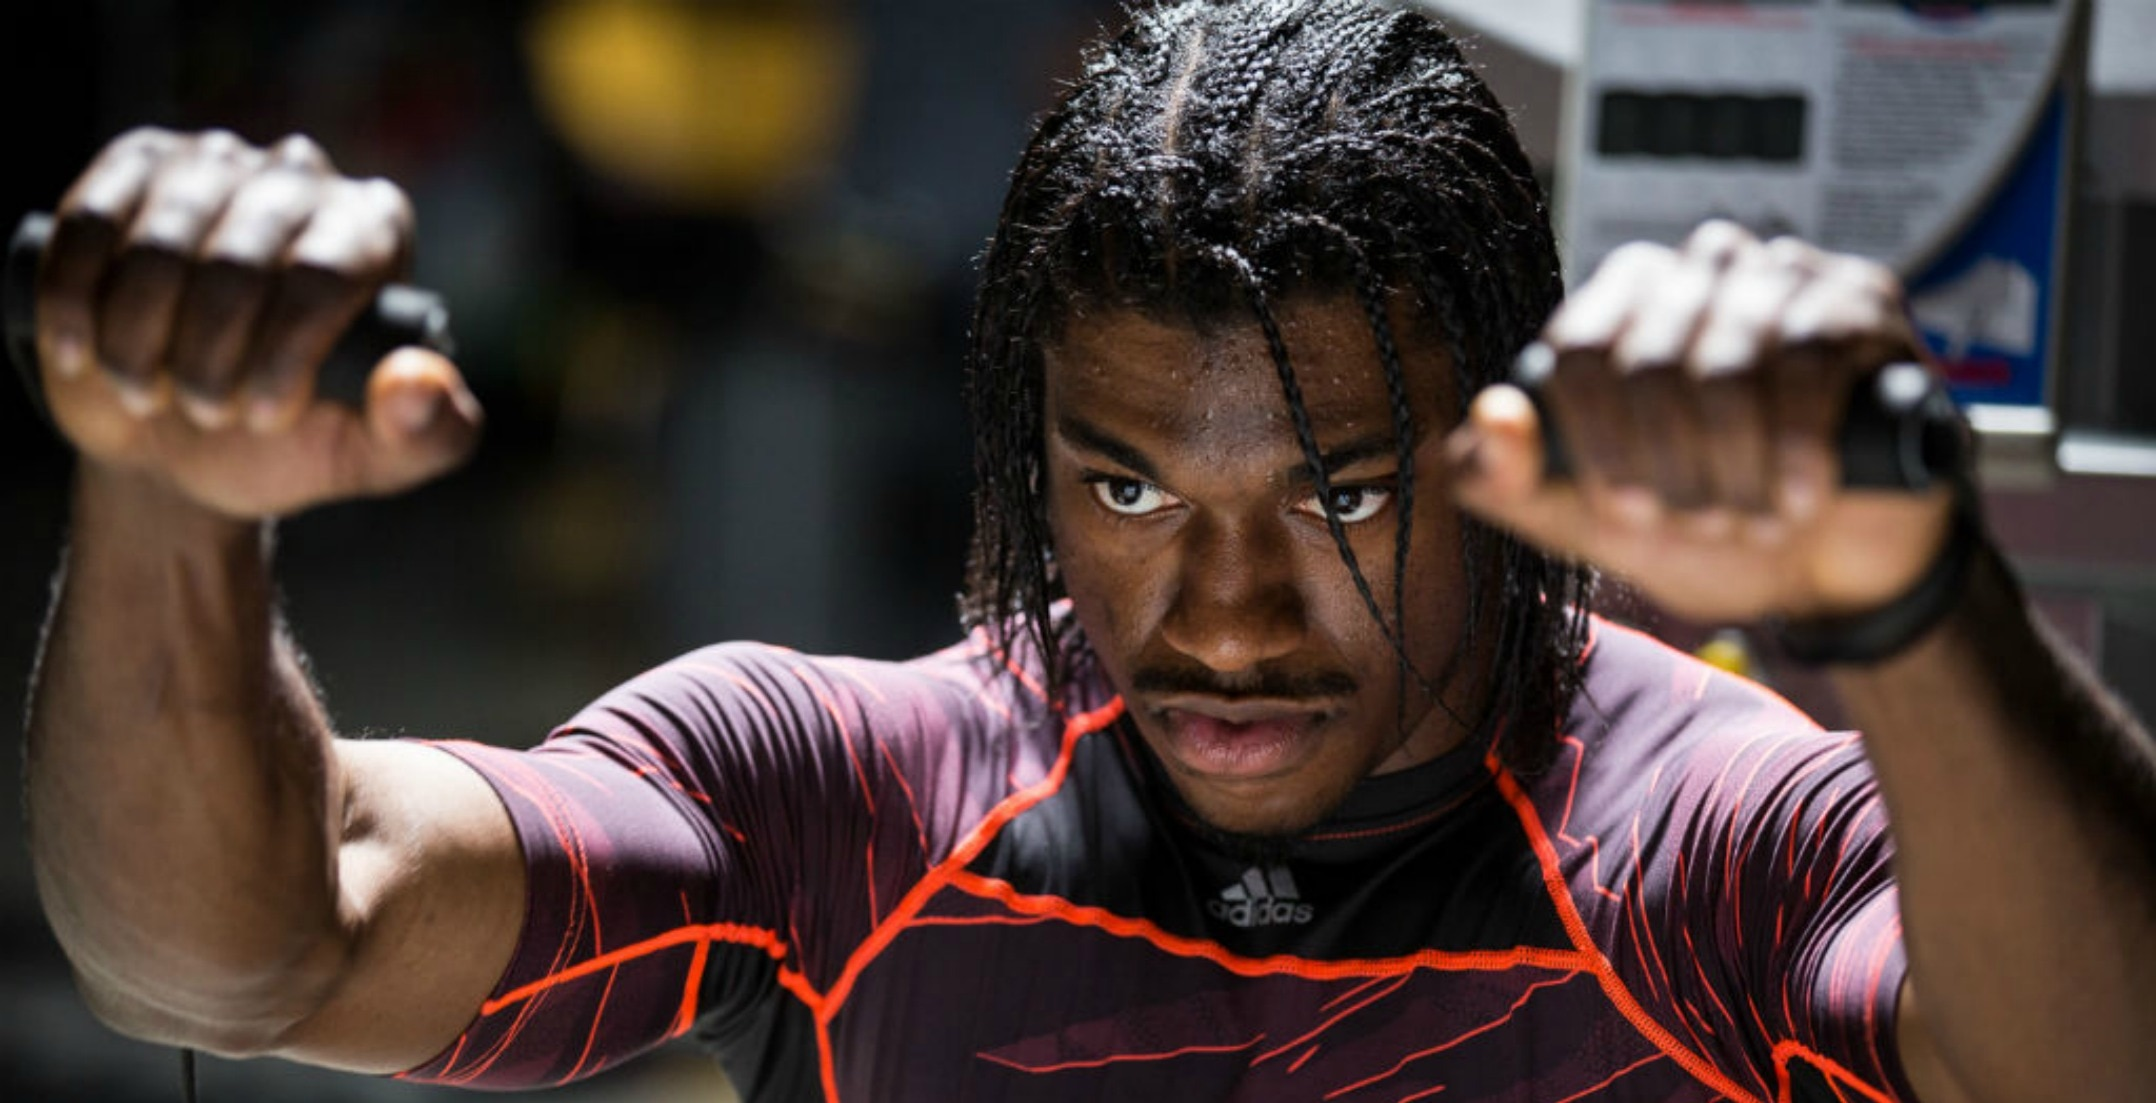 Courtesy of ESPN.com: RGIII has been working his tail off this offseason. Will it lead to a rebound season?